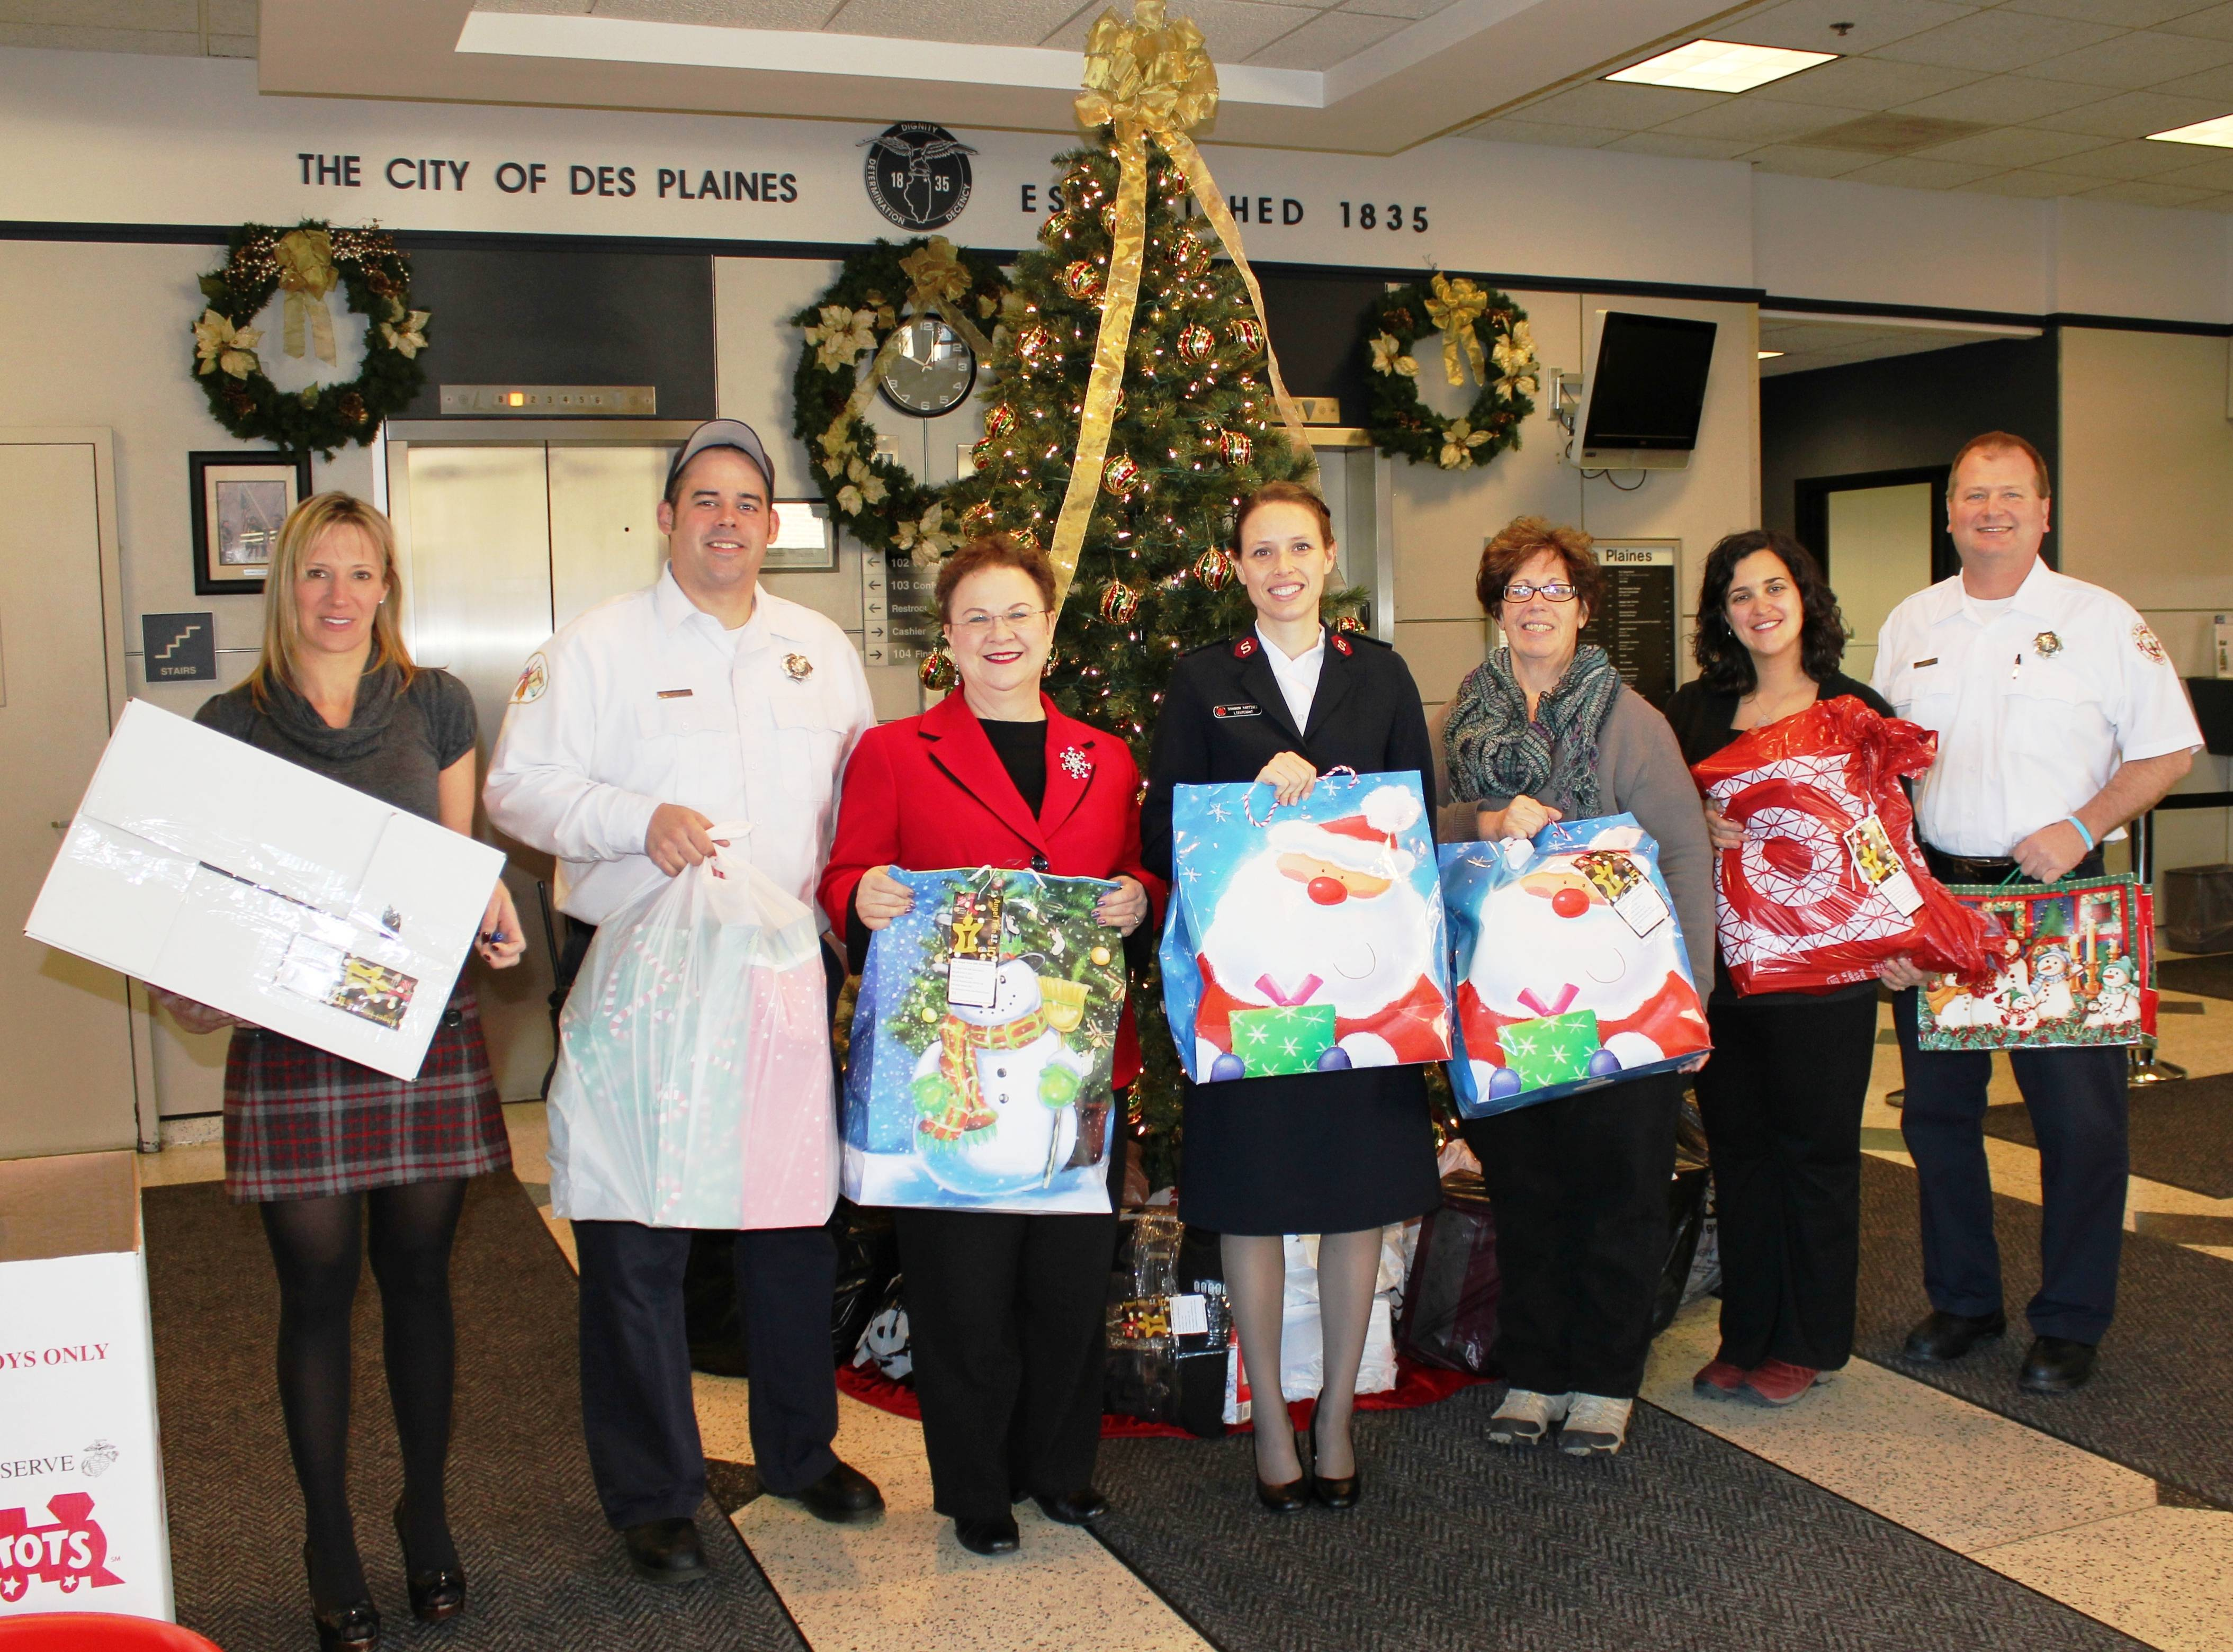 (pictured above left to right) Des Plaines Fire Prevention Bureau Secretary Mary Nistler, Firefighter/Paramedic Ed Rogers, City Clerk Gloria J. Ludwig, Salvation Army Lieutenant Shannon Martinez, Community Health Nurse Kathy Puetz, Des Plaines Community Social Worker Jeanine Stricker and Fire Department Lieutenant Ken Palenik pose for a photograph with some of the many gifts donated to the Salvation Army's Angel Tree Program.